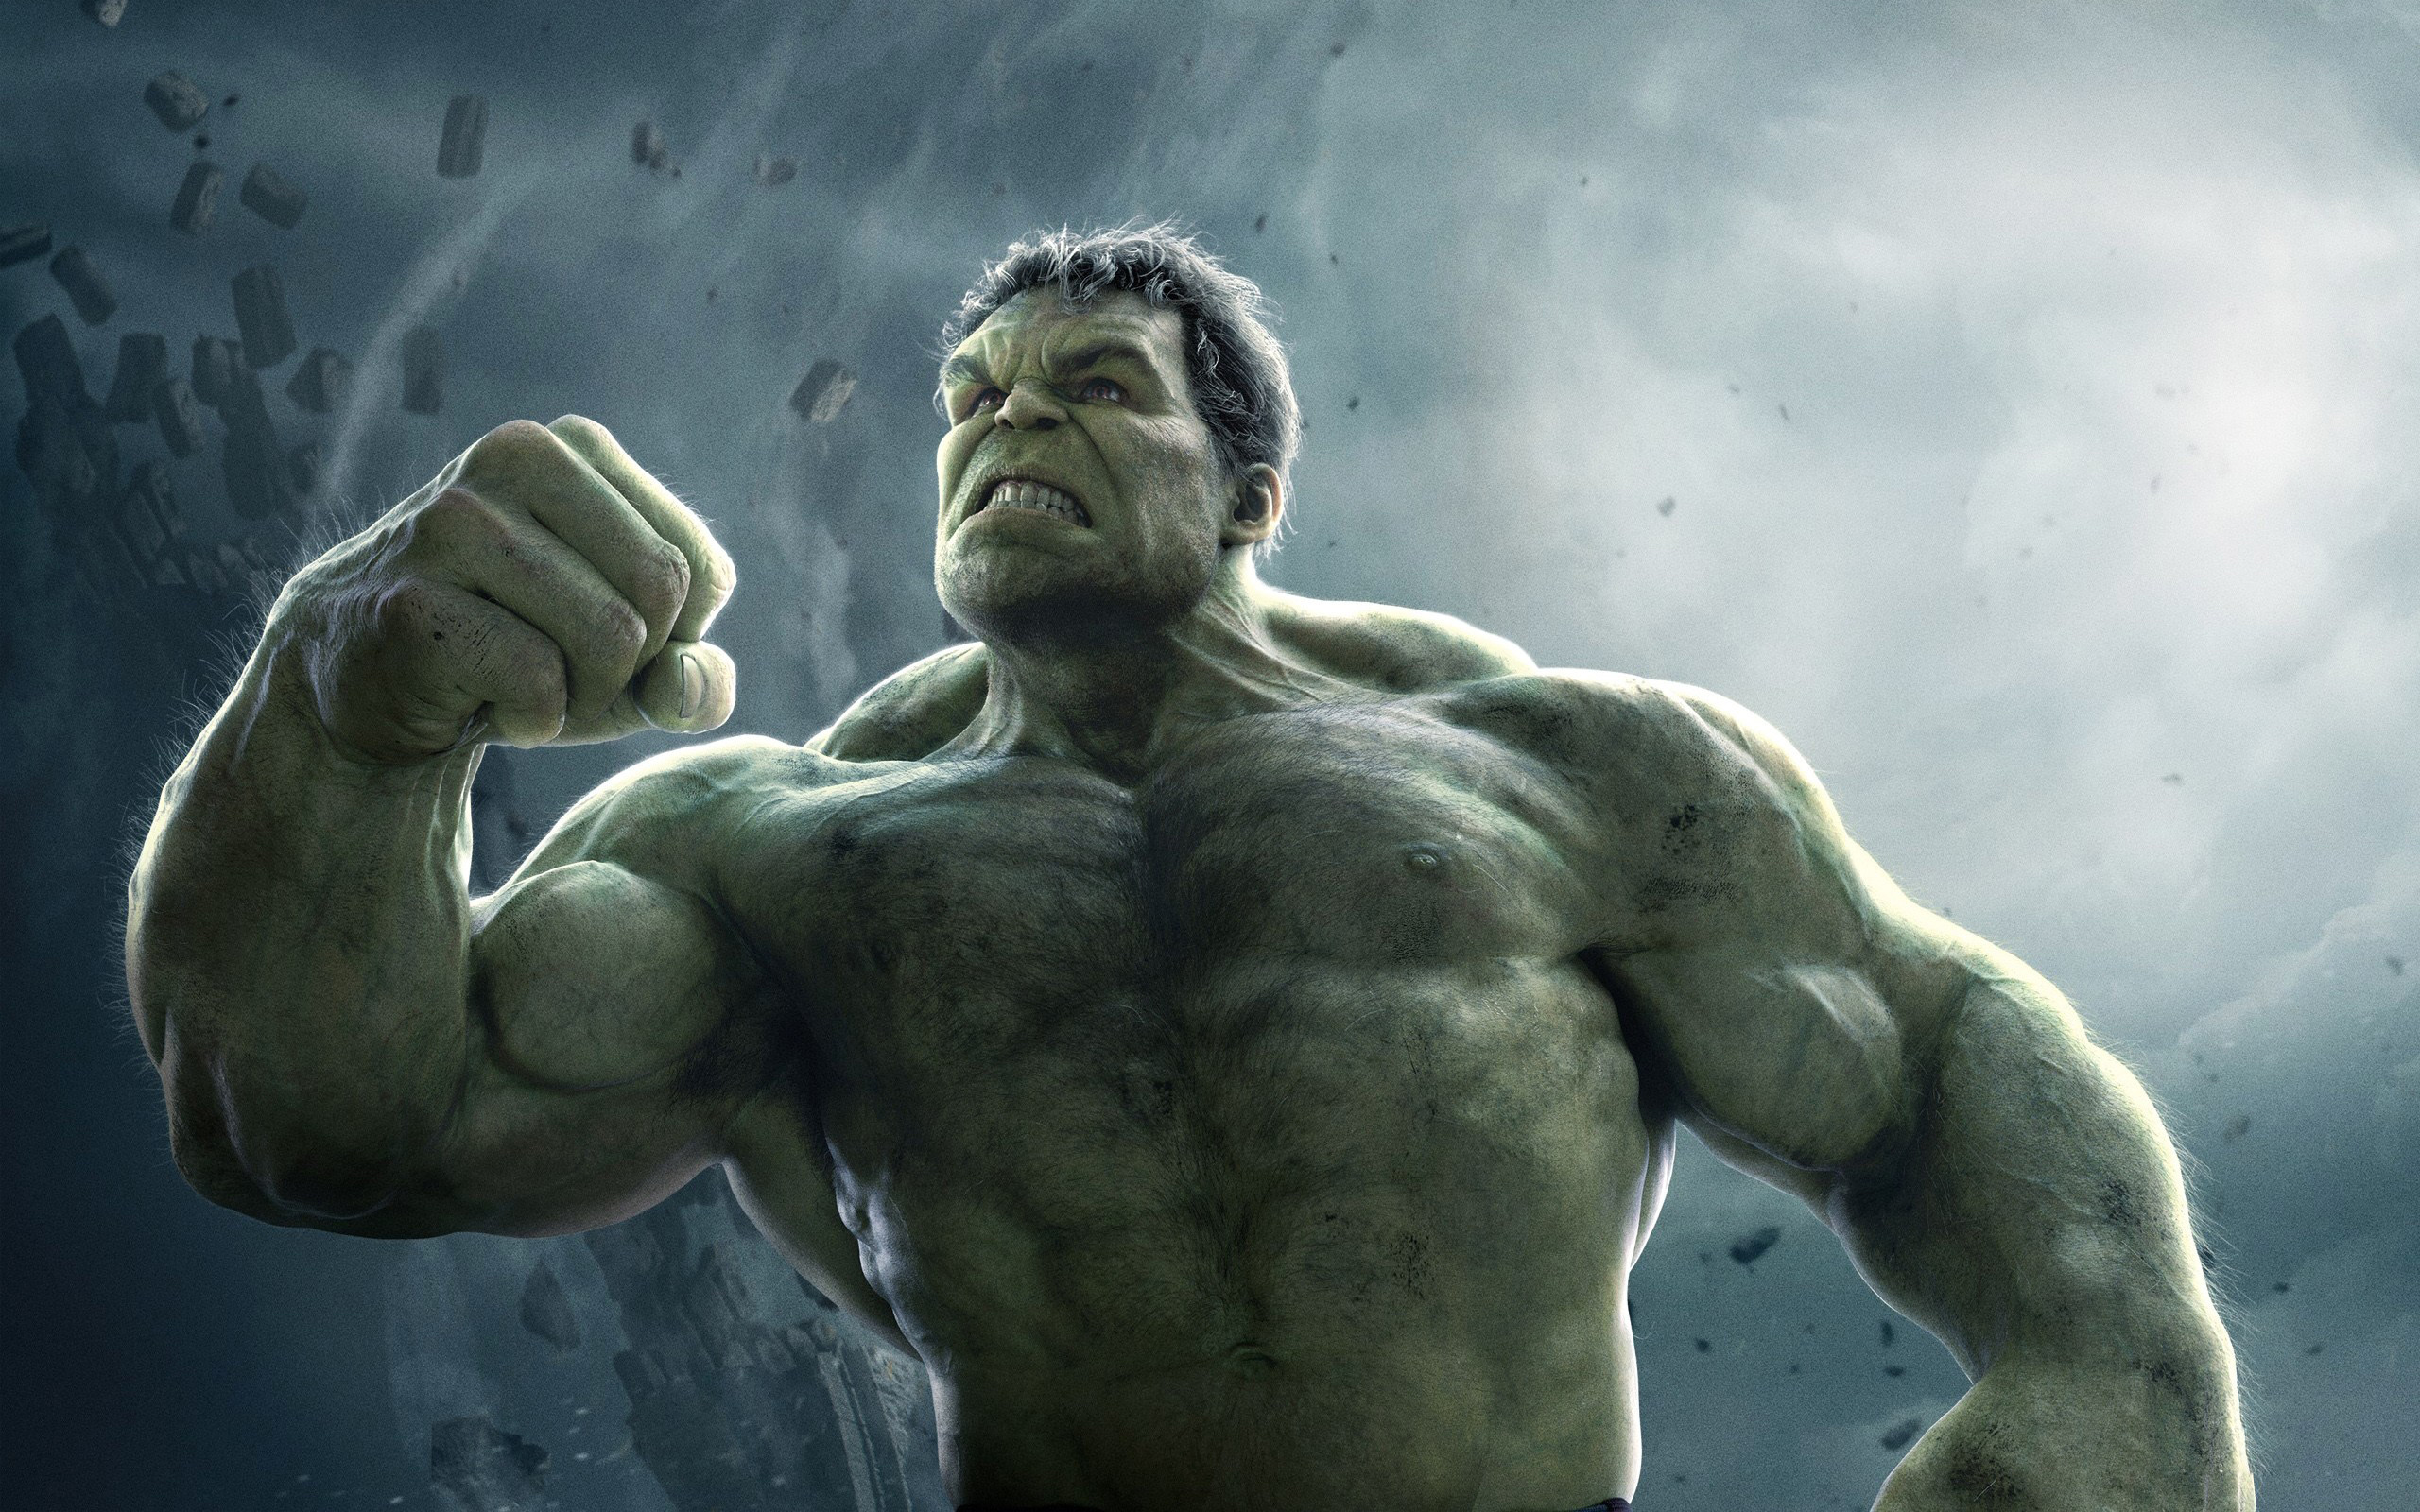 Avengers Age of Ultron Hulk Movie – New HD Wallpapers